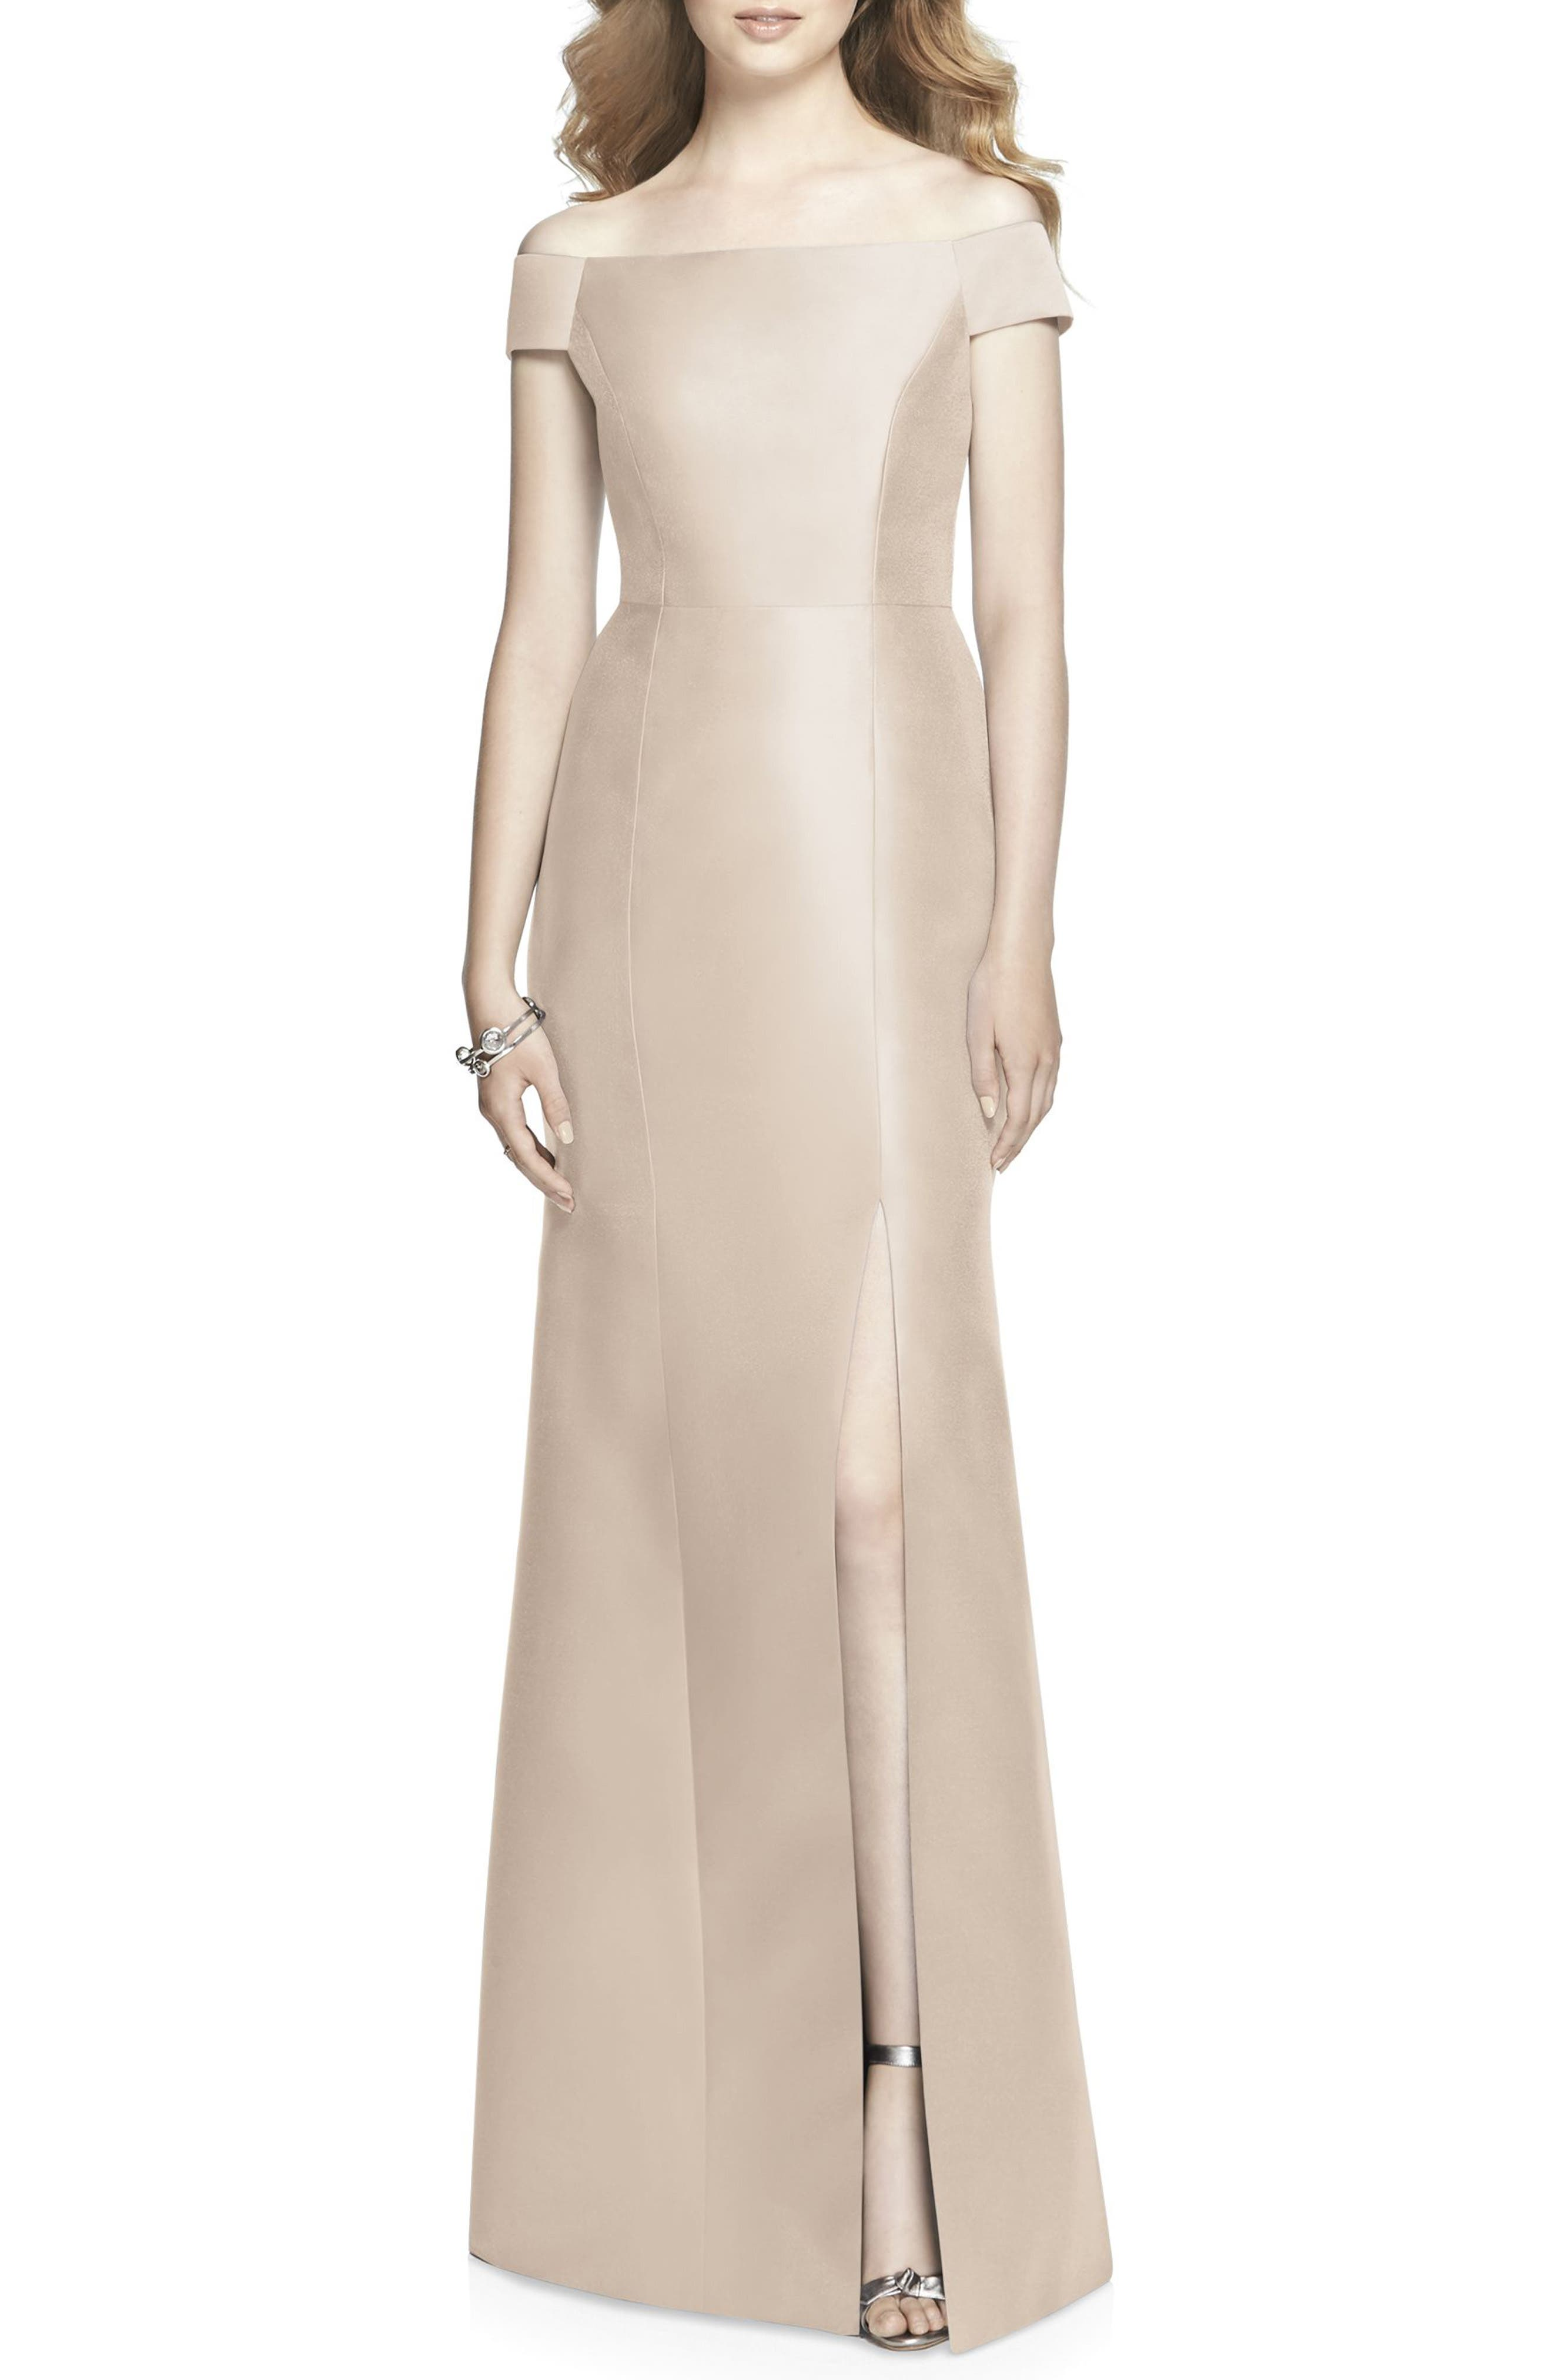 ALFRED SUNG, Off the Shoulder Sateen Gown, Main thumbnail 1, color, CAMEO